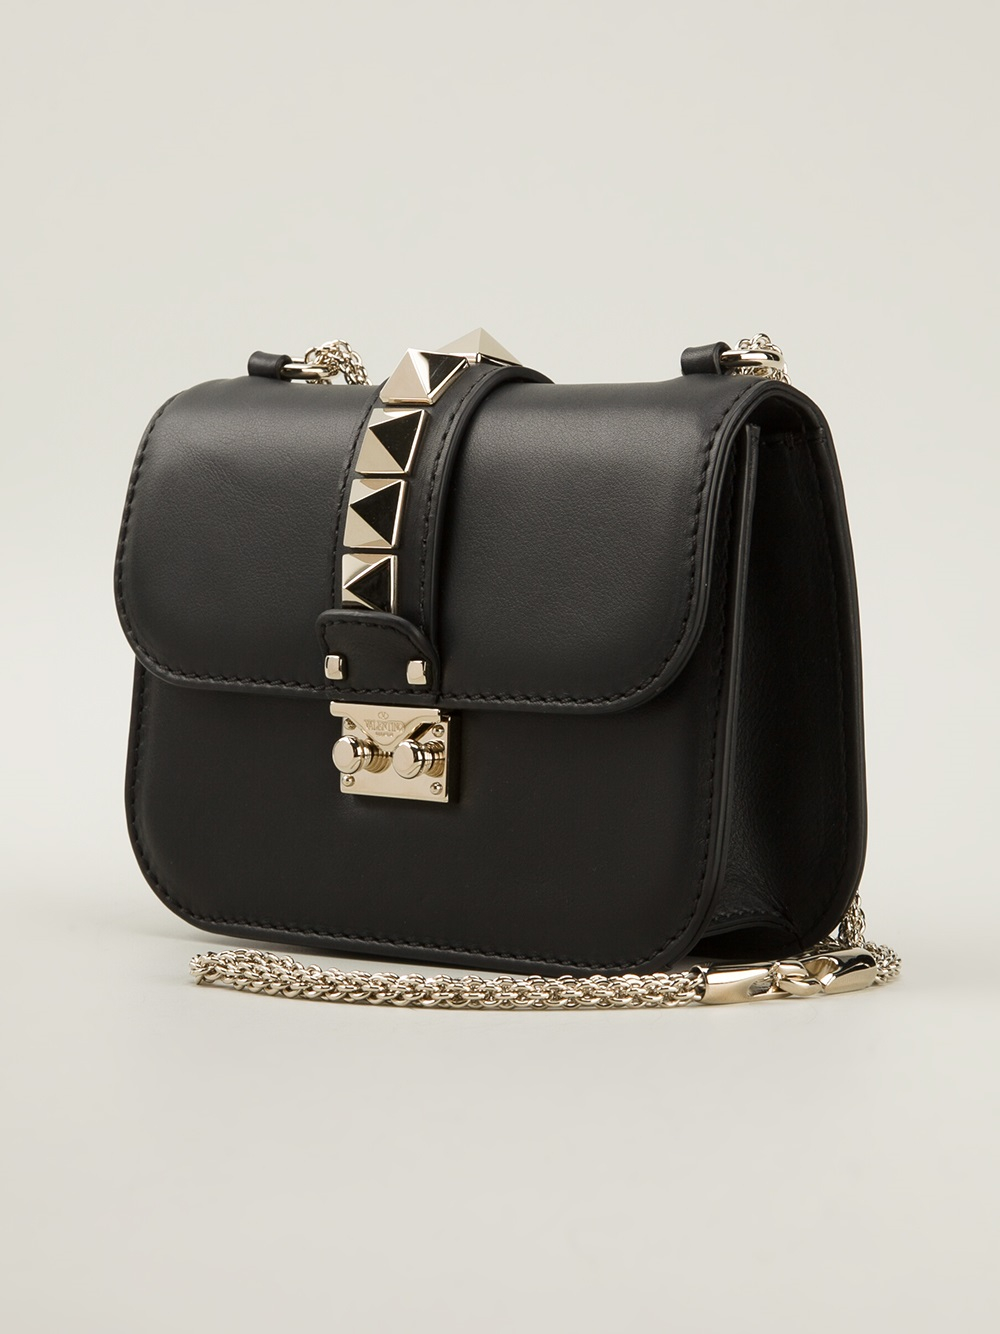 42c324b54feb Valentino Rockstud Shoulder Bag